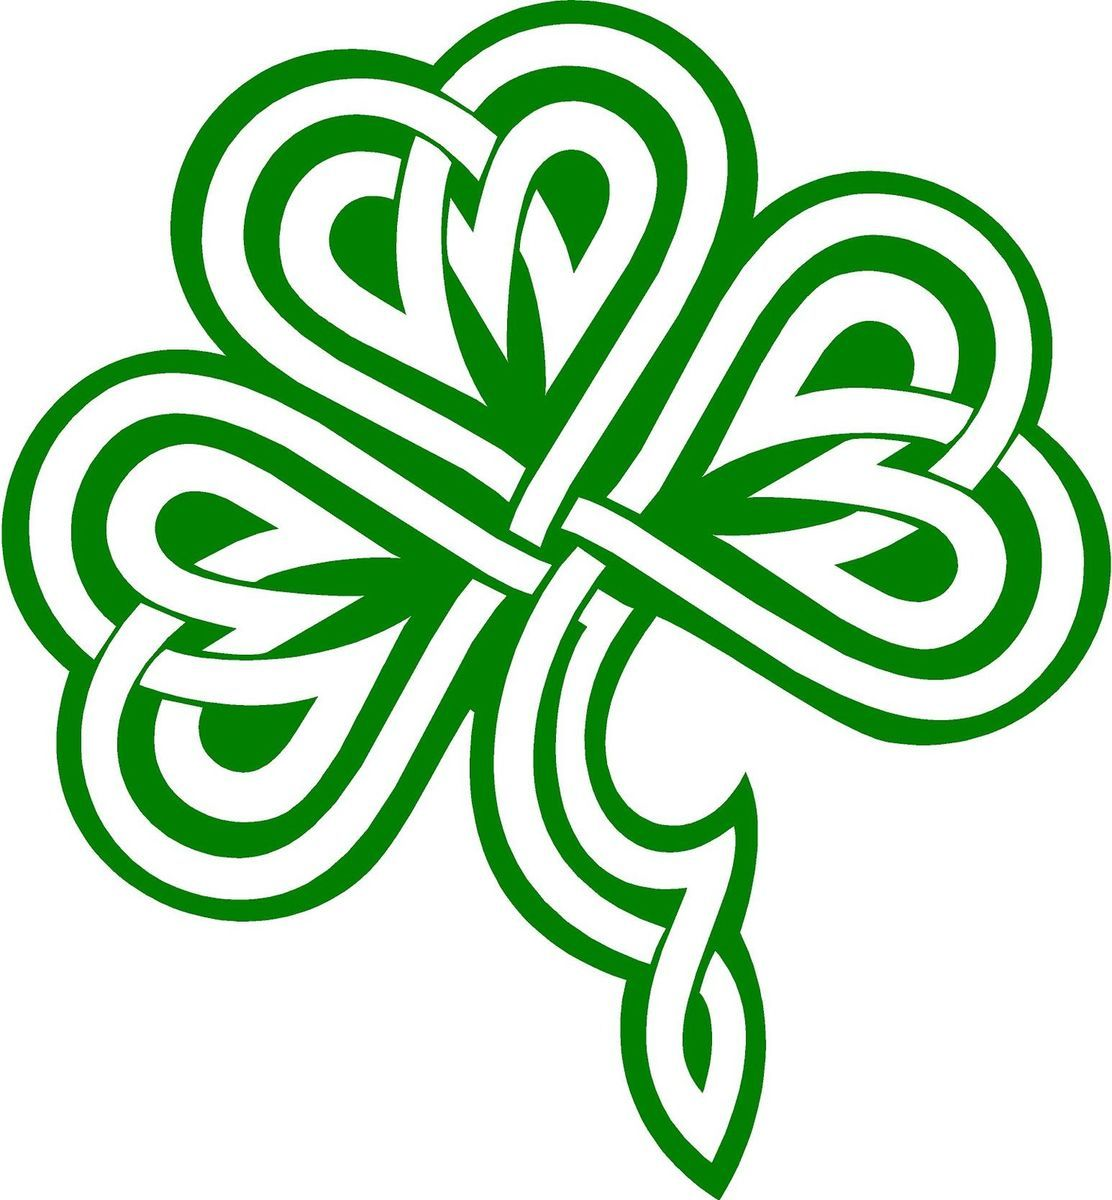 Clover / Shamrock Celtic Knot Decal /Sticker You Pick Color ...